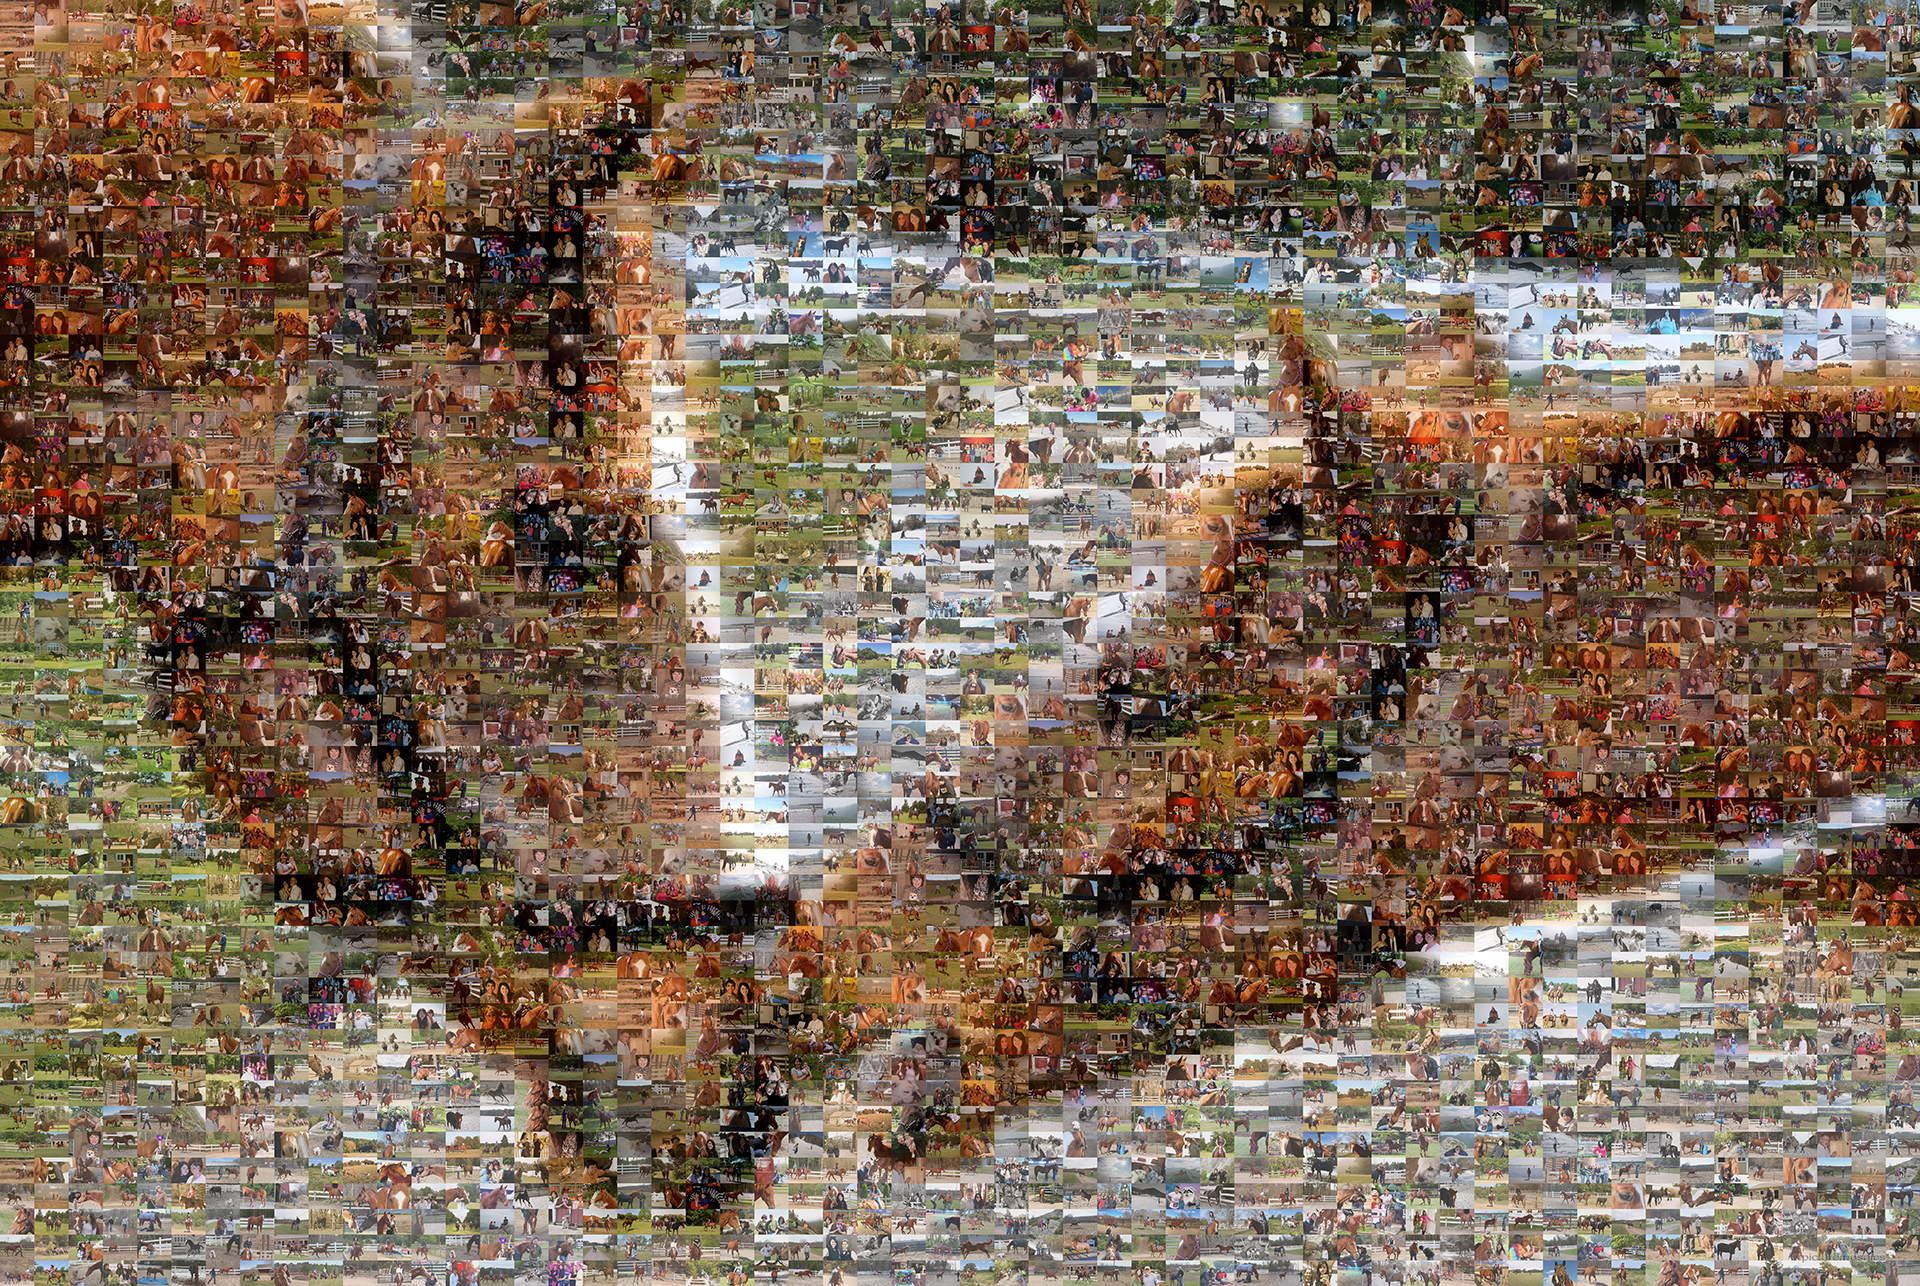 photo mosaic created using 652 photos